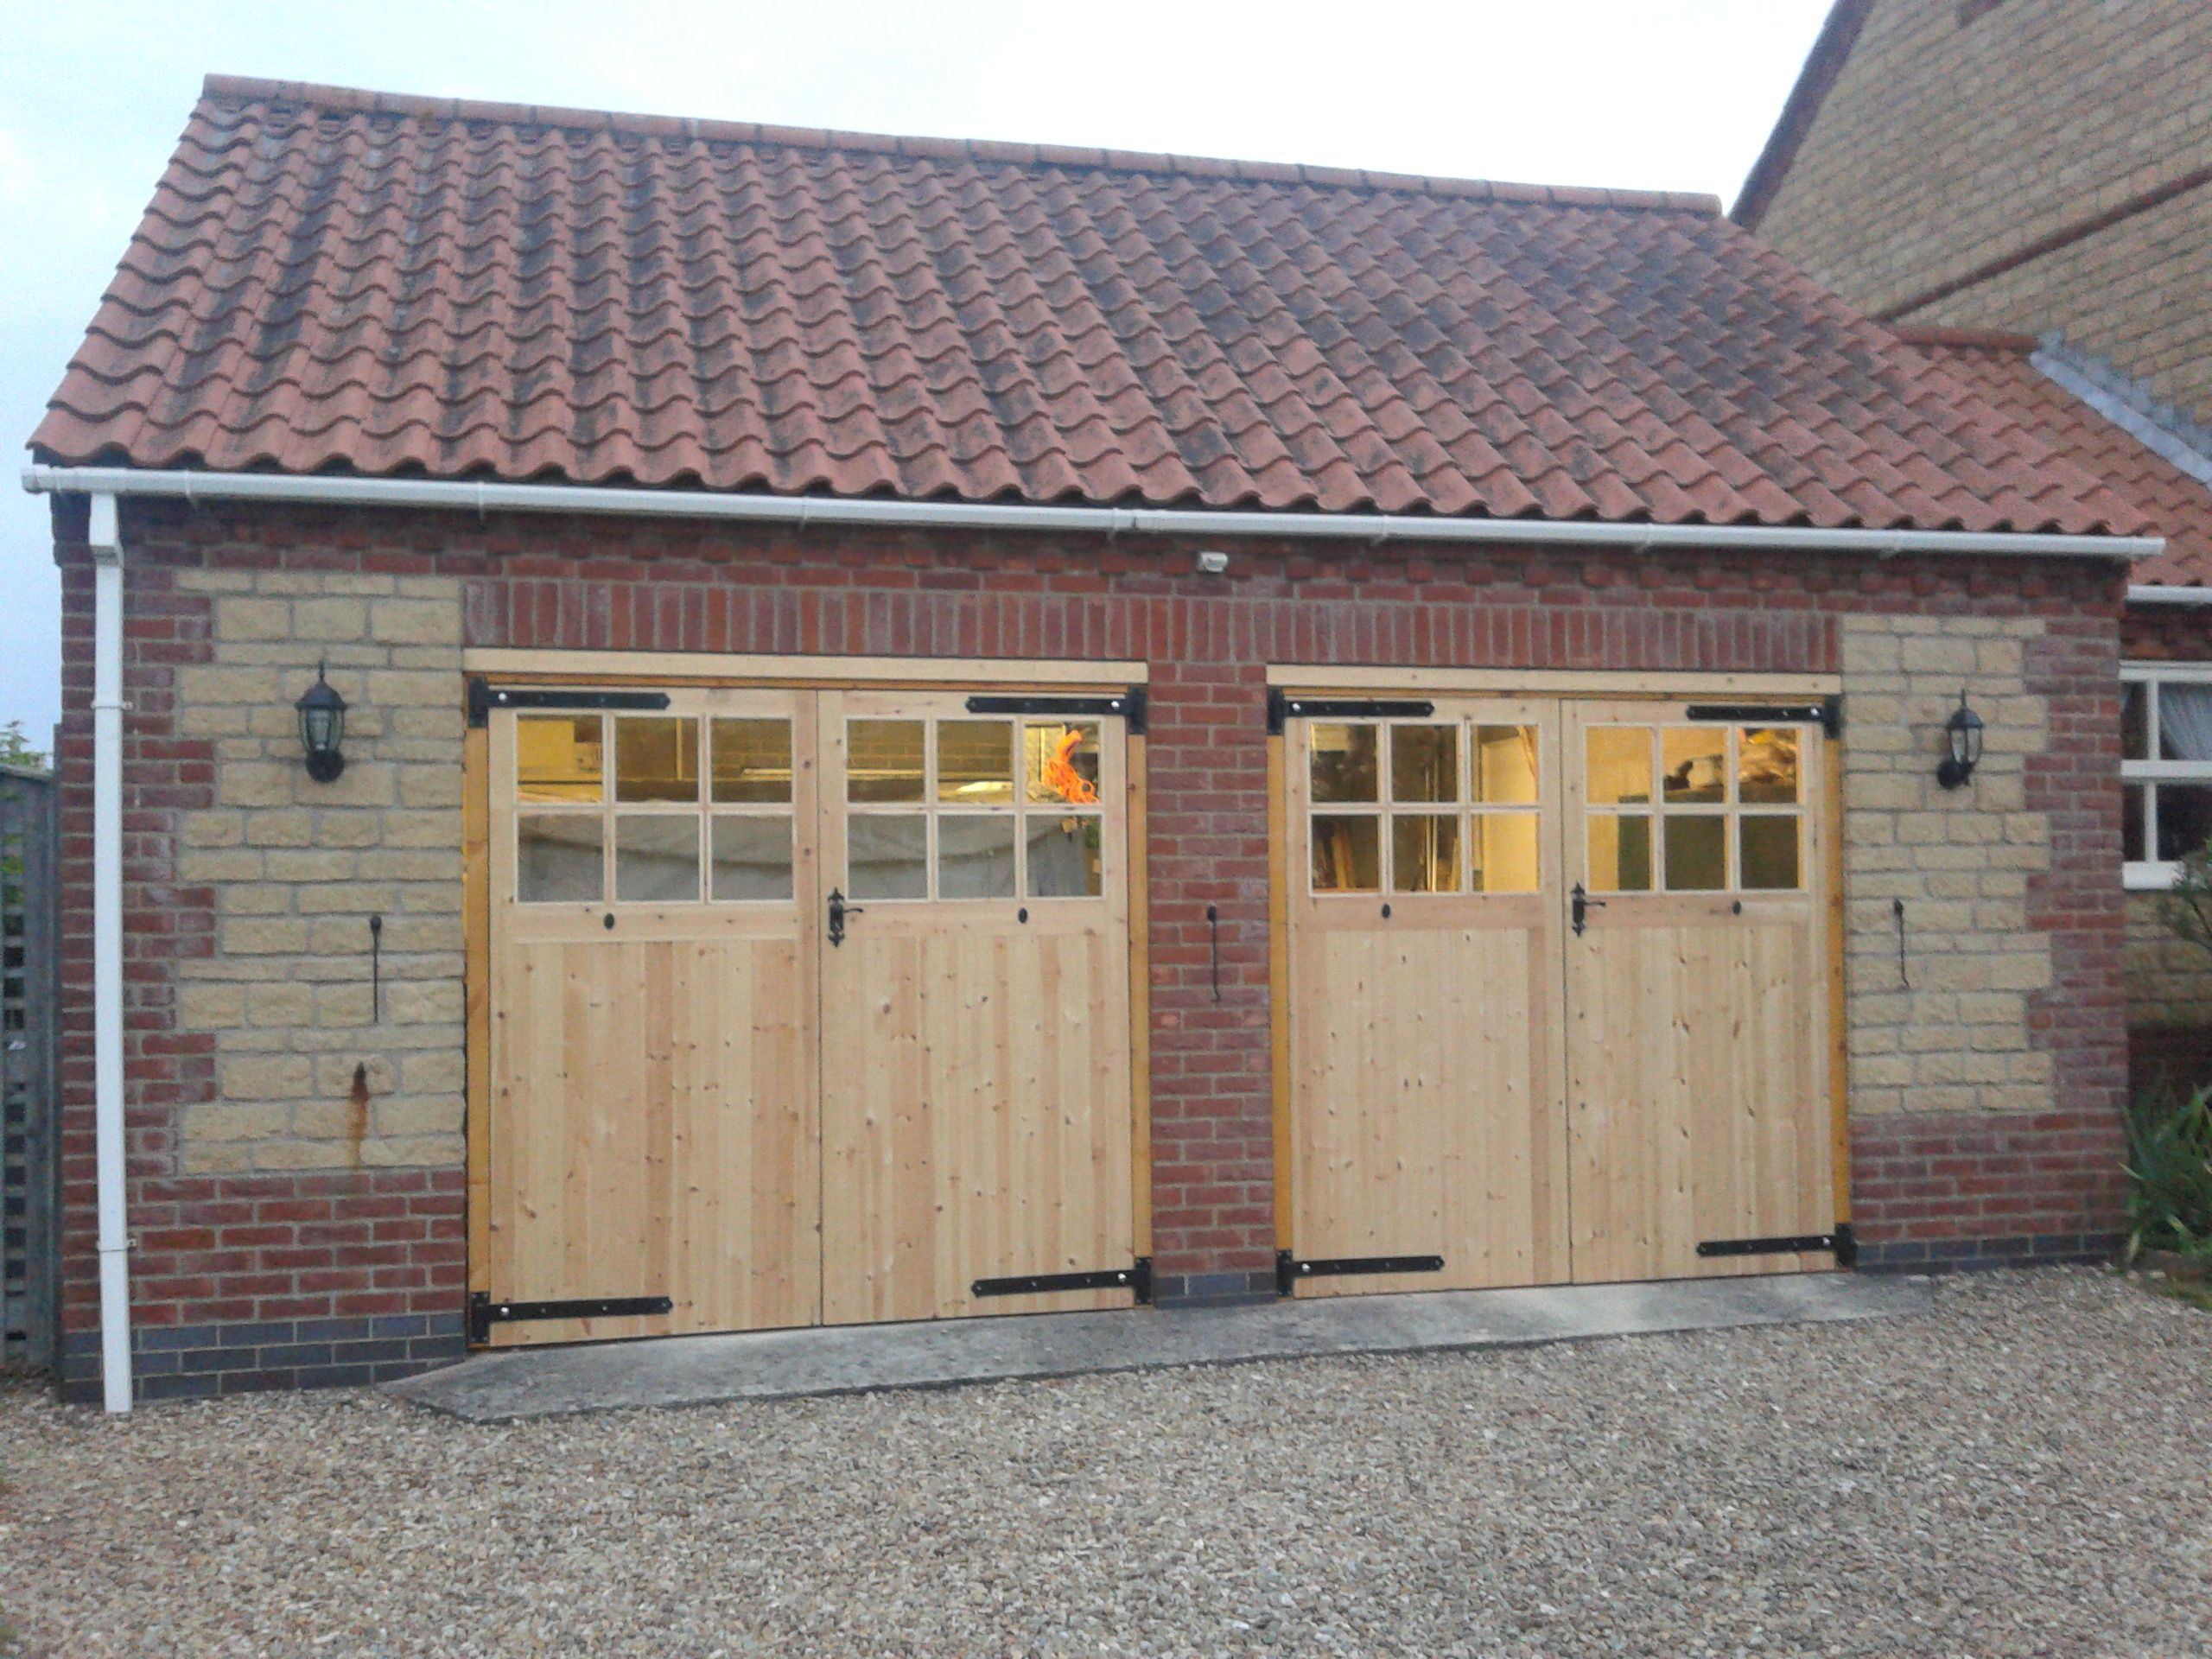 Carriage double garage door - Could Work If The Single Doors Were Extra Wide Classic Double Carriage Garage Doors With